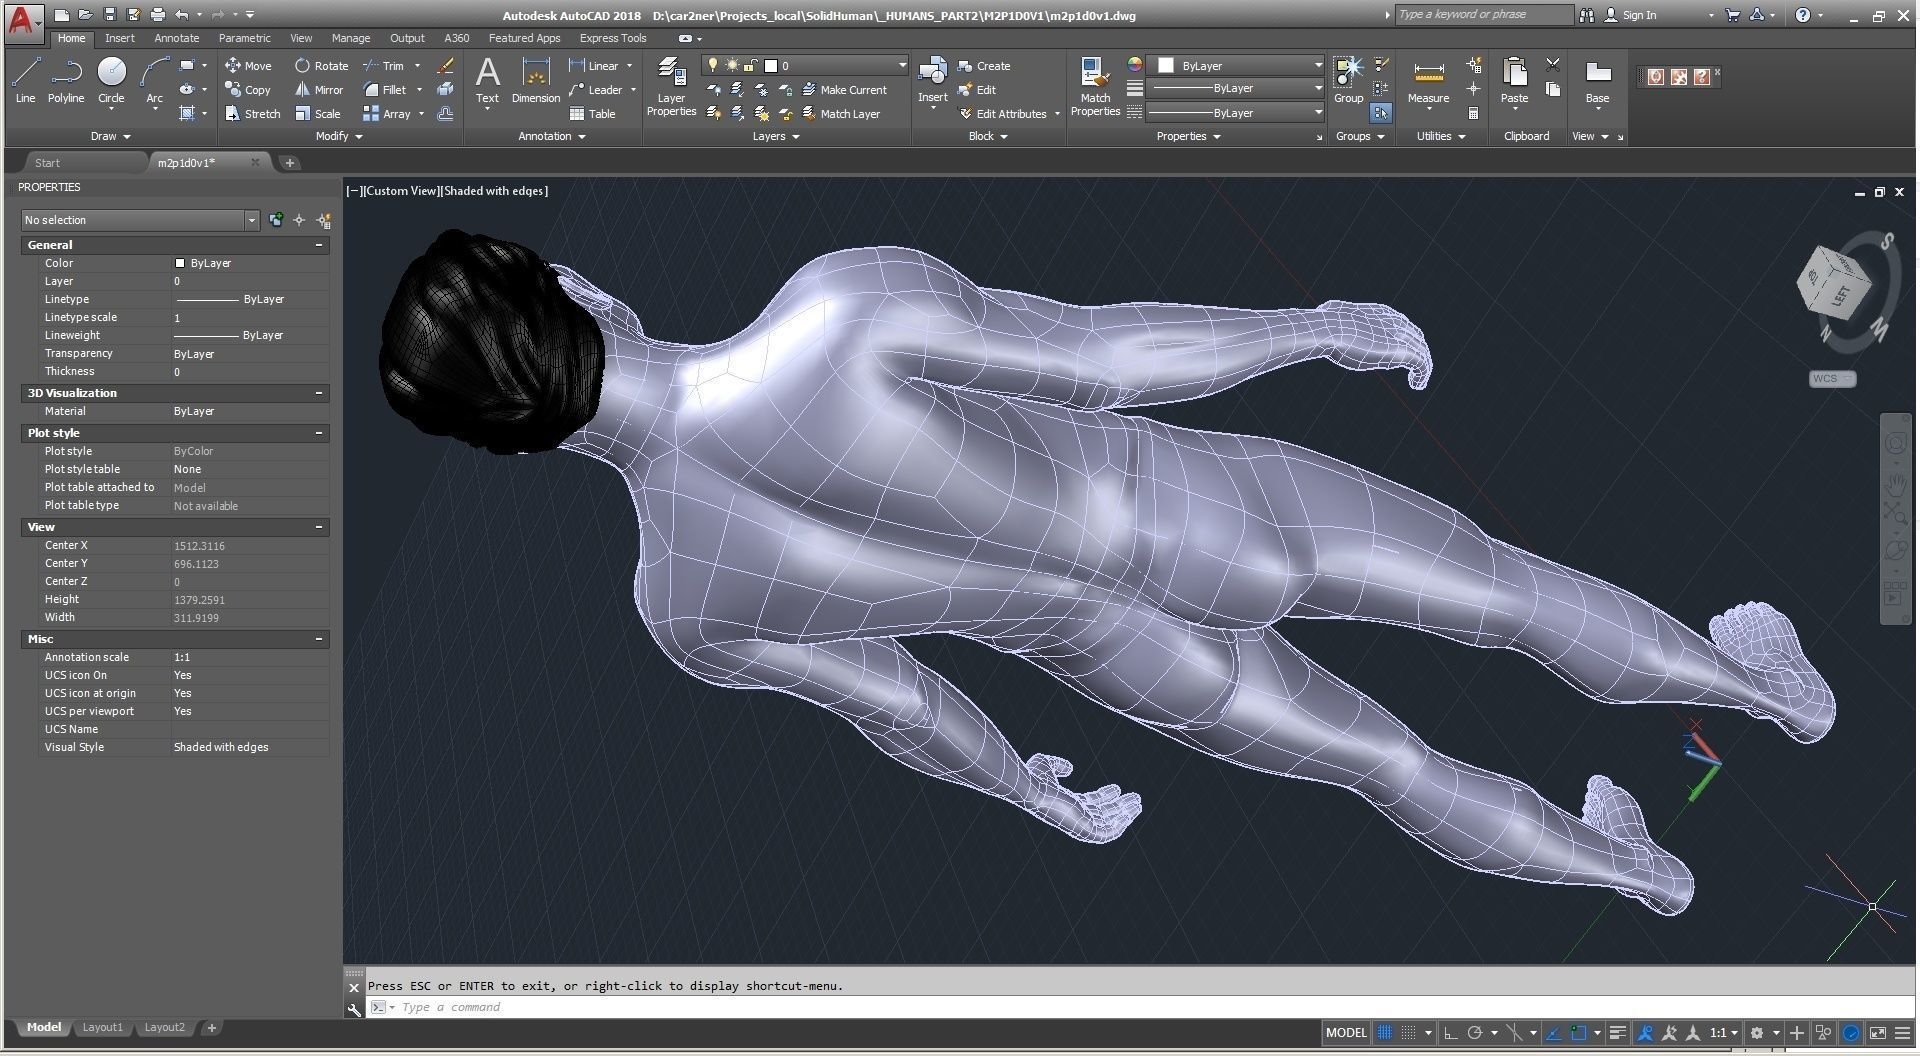 Solidbody CAD #Model M2P1D0V1 Tyler in AutoCAD interface